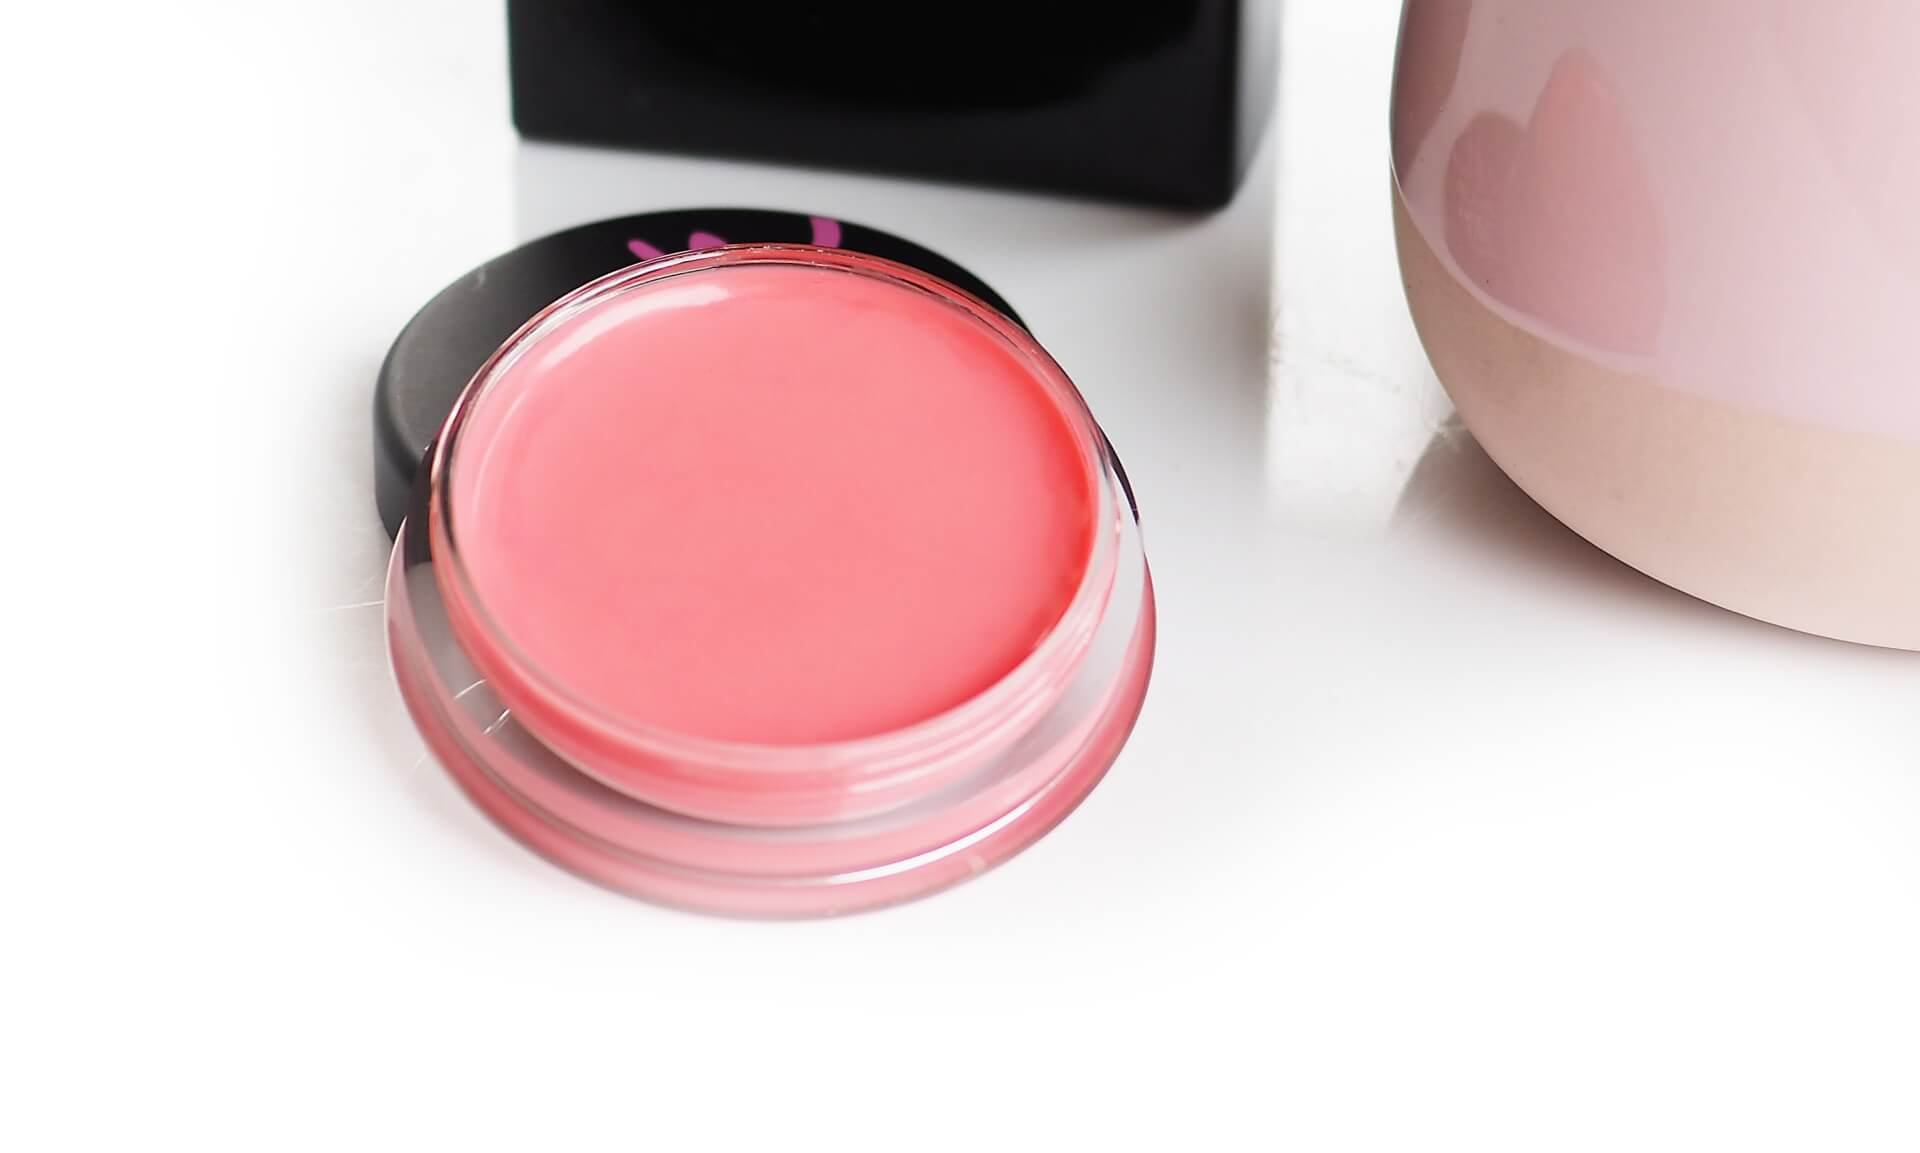 Powder pink Sleek Make Up Pout Polish SPF15